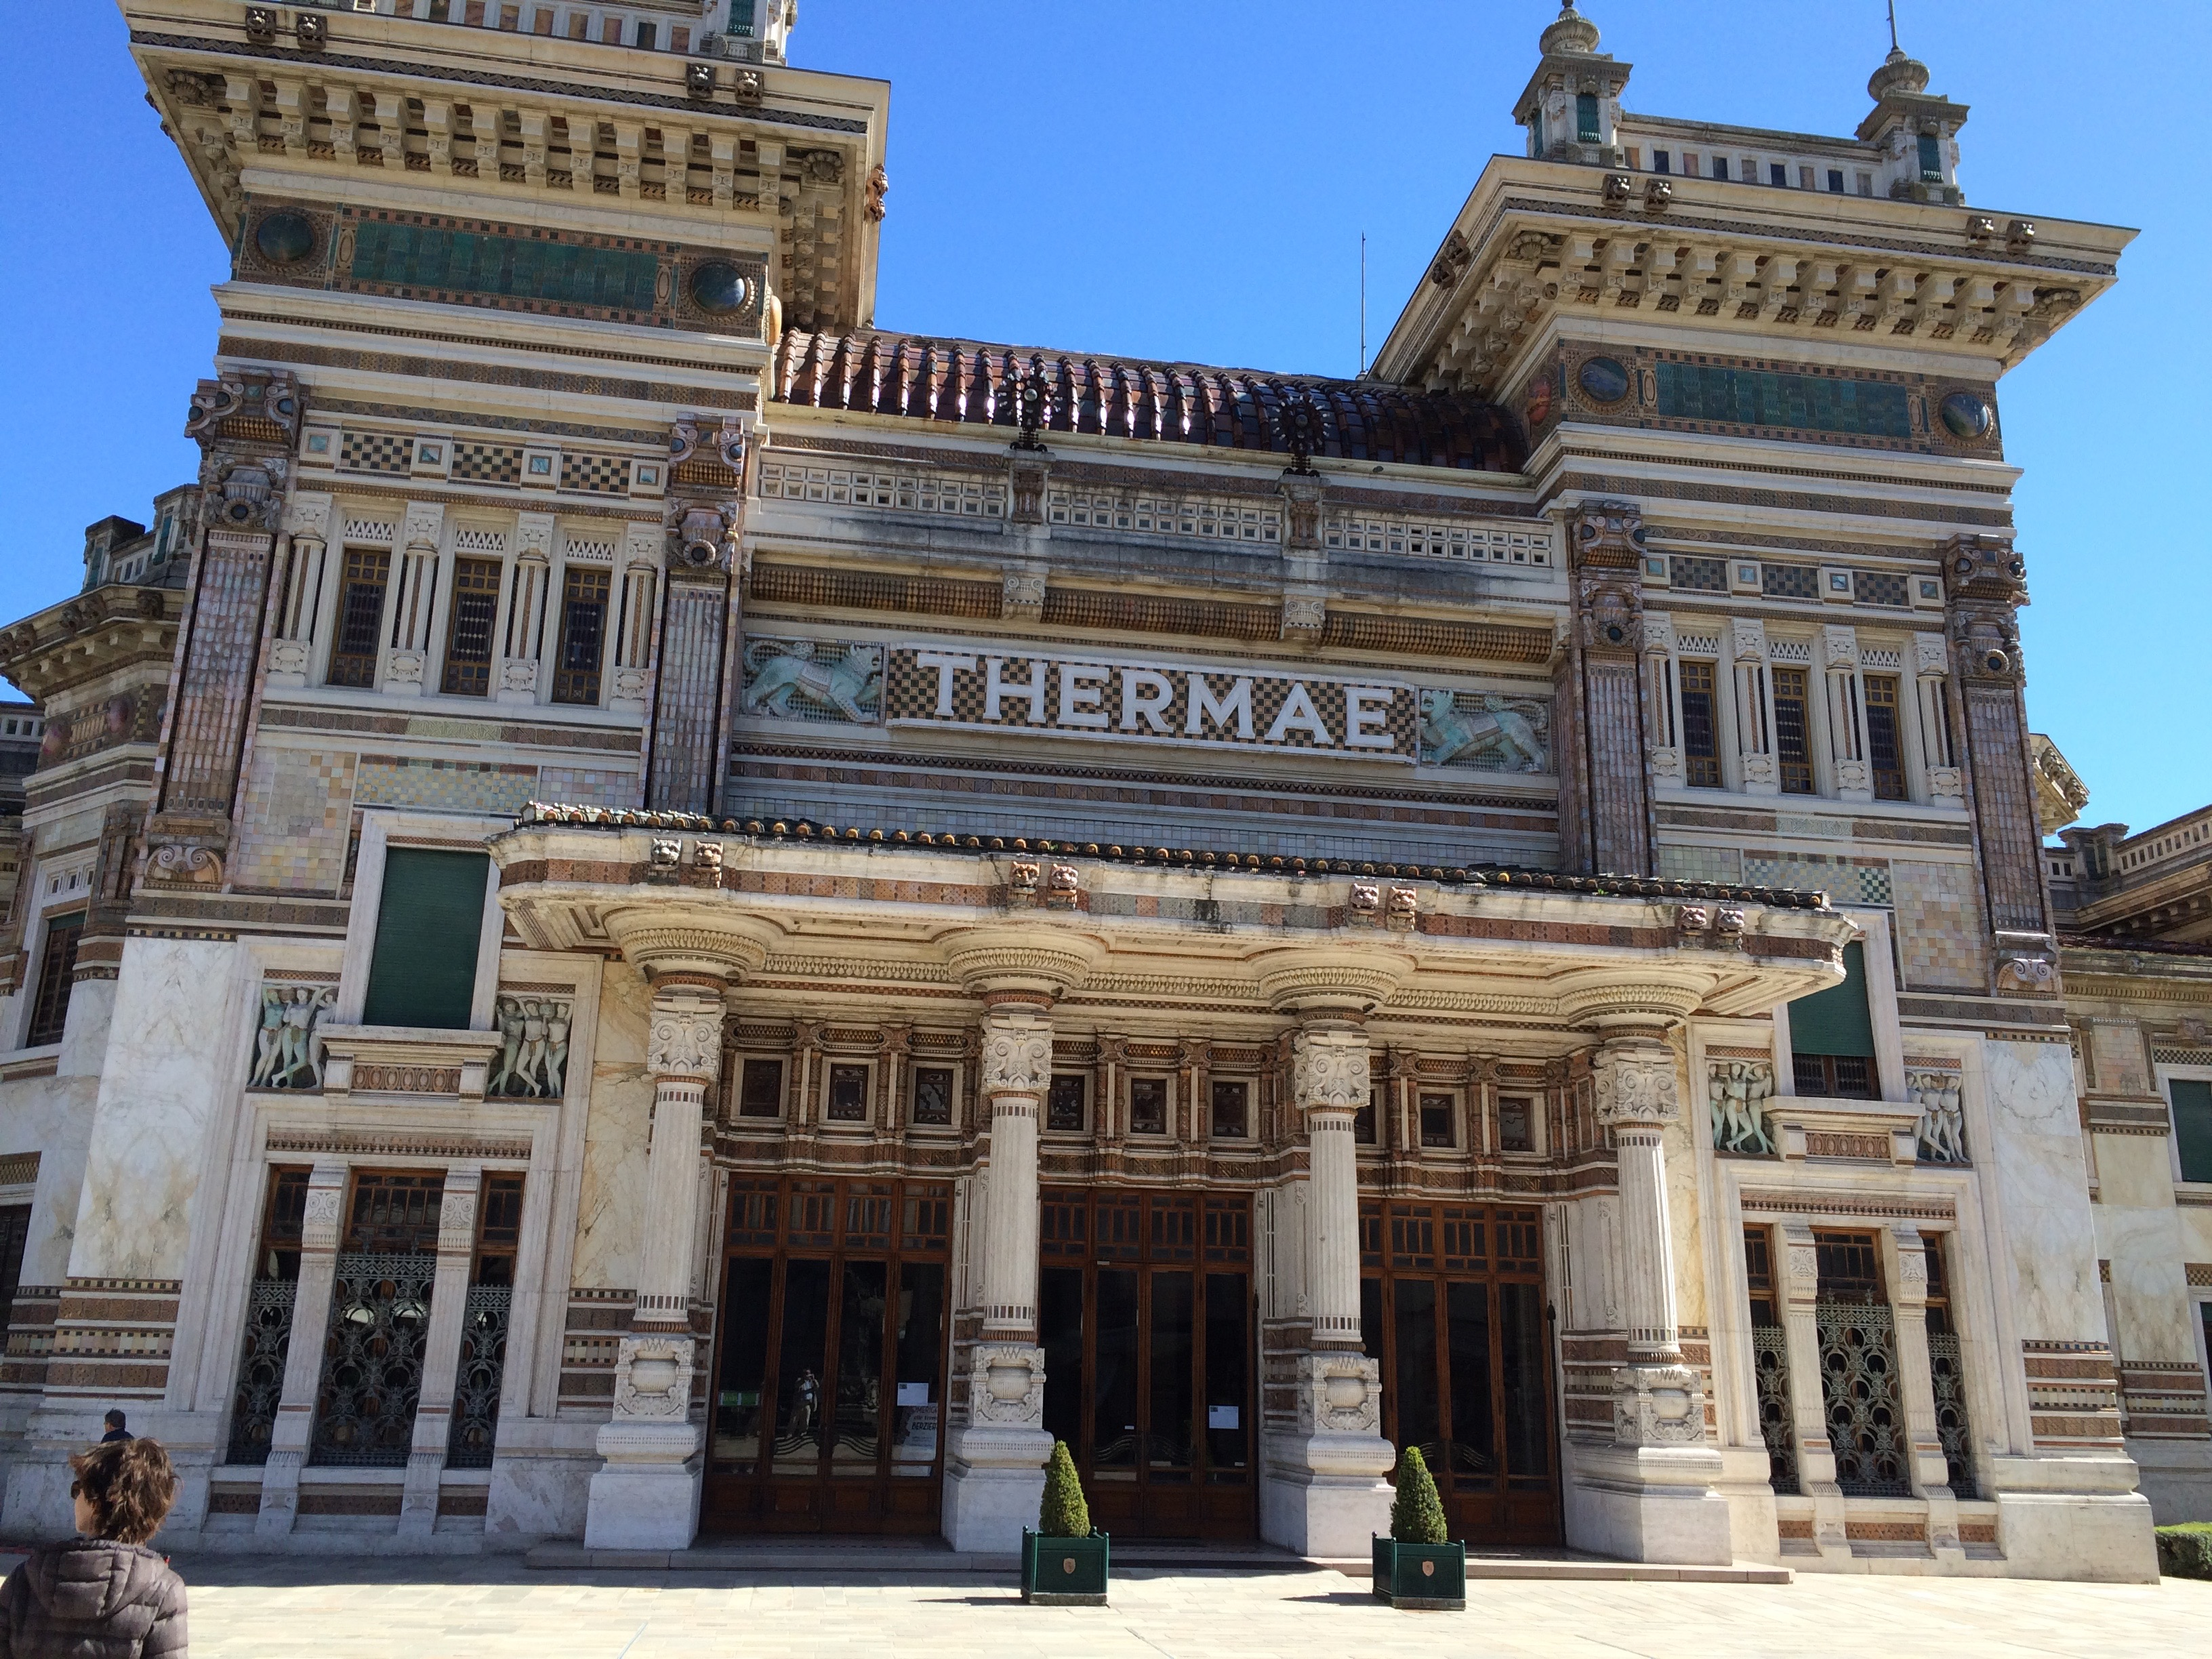 Thermae Salsomaggiore